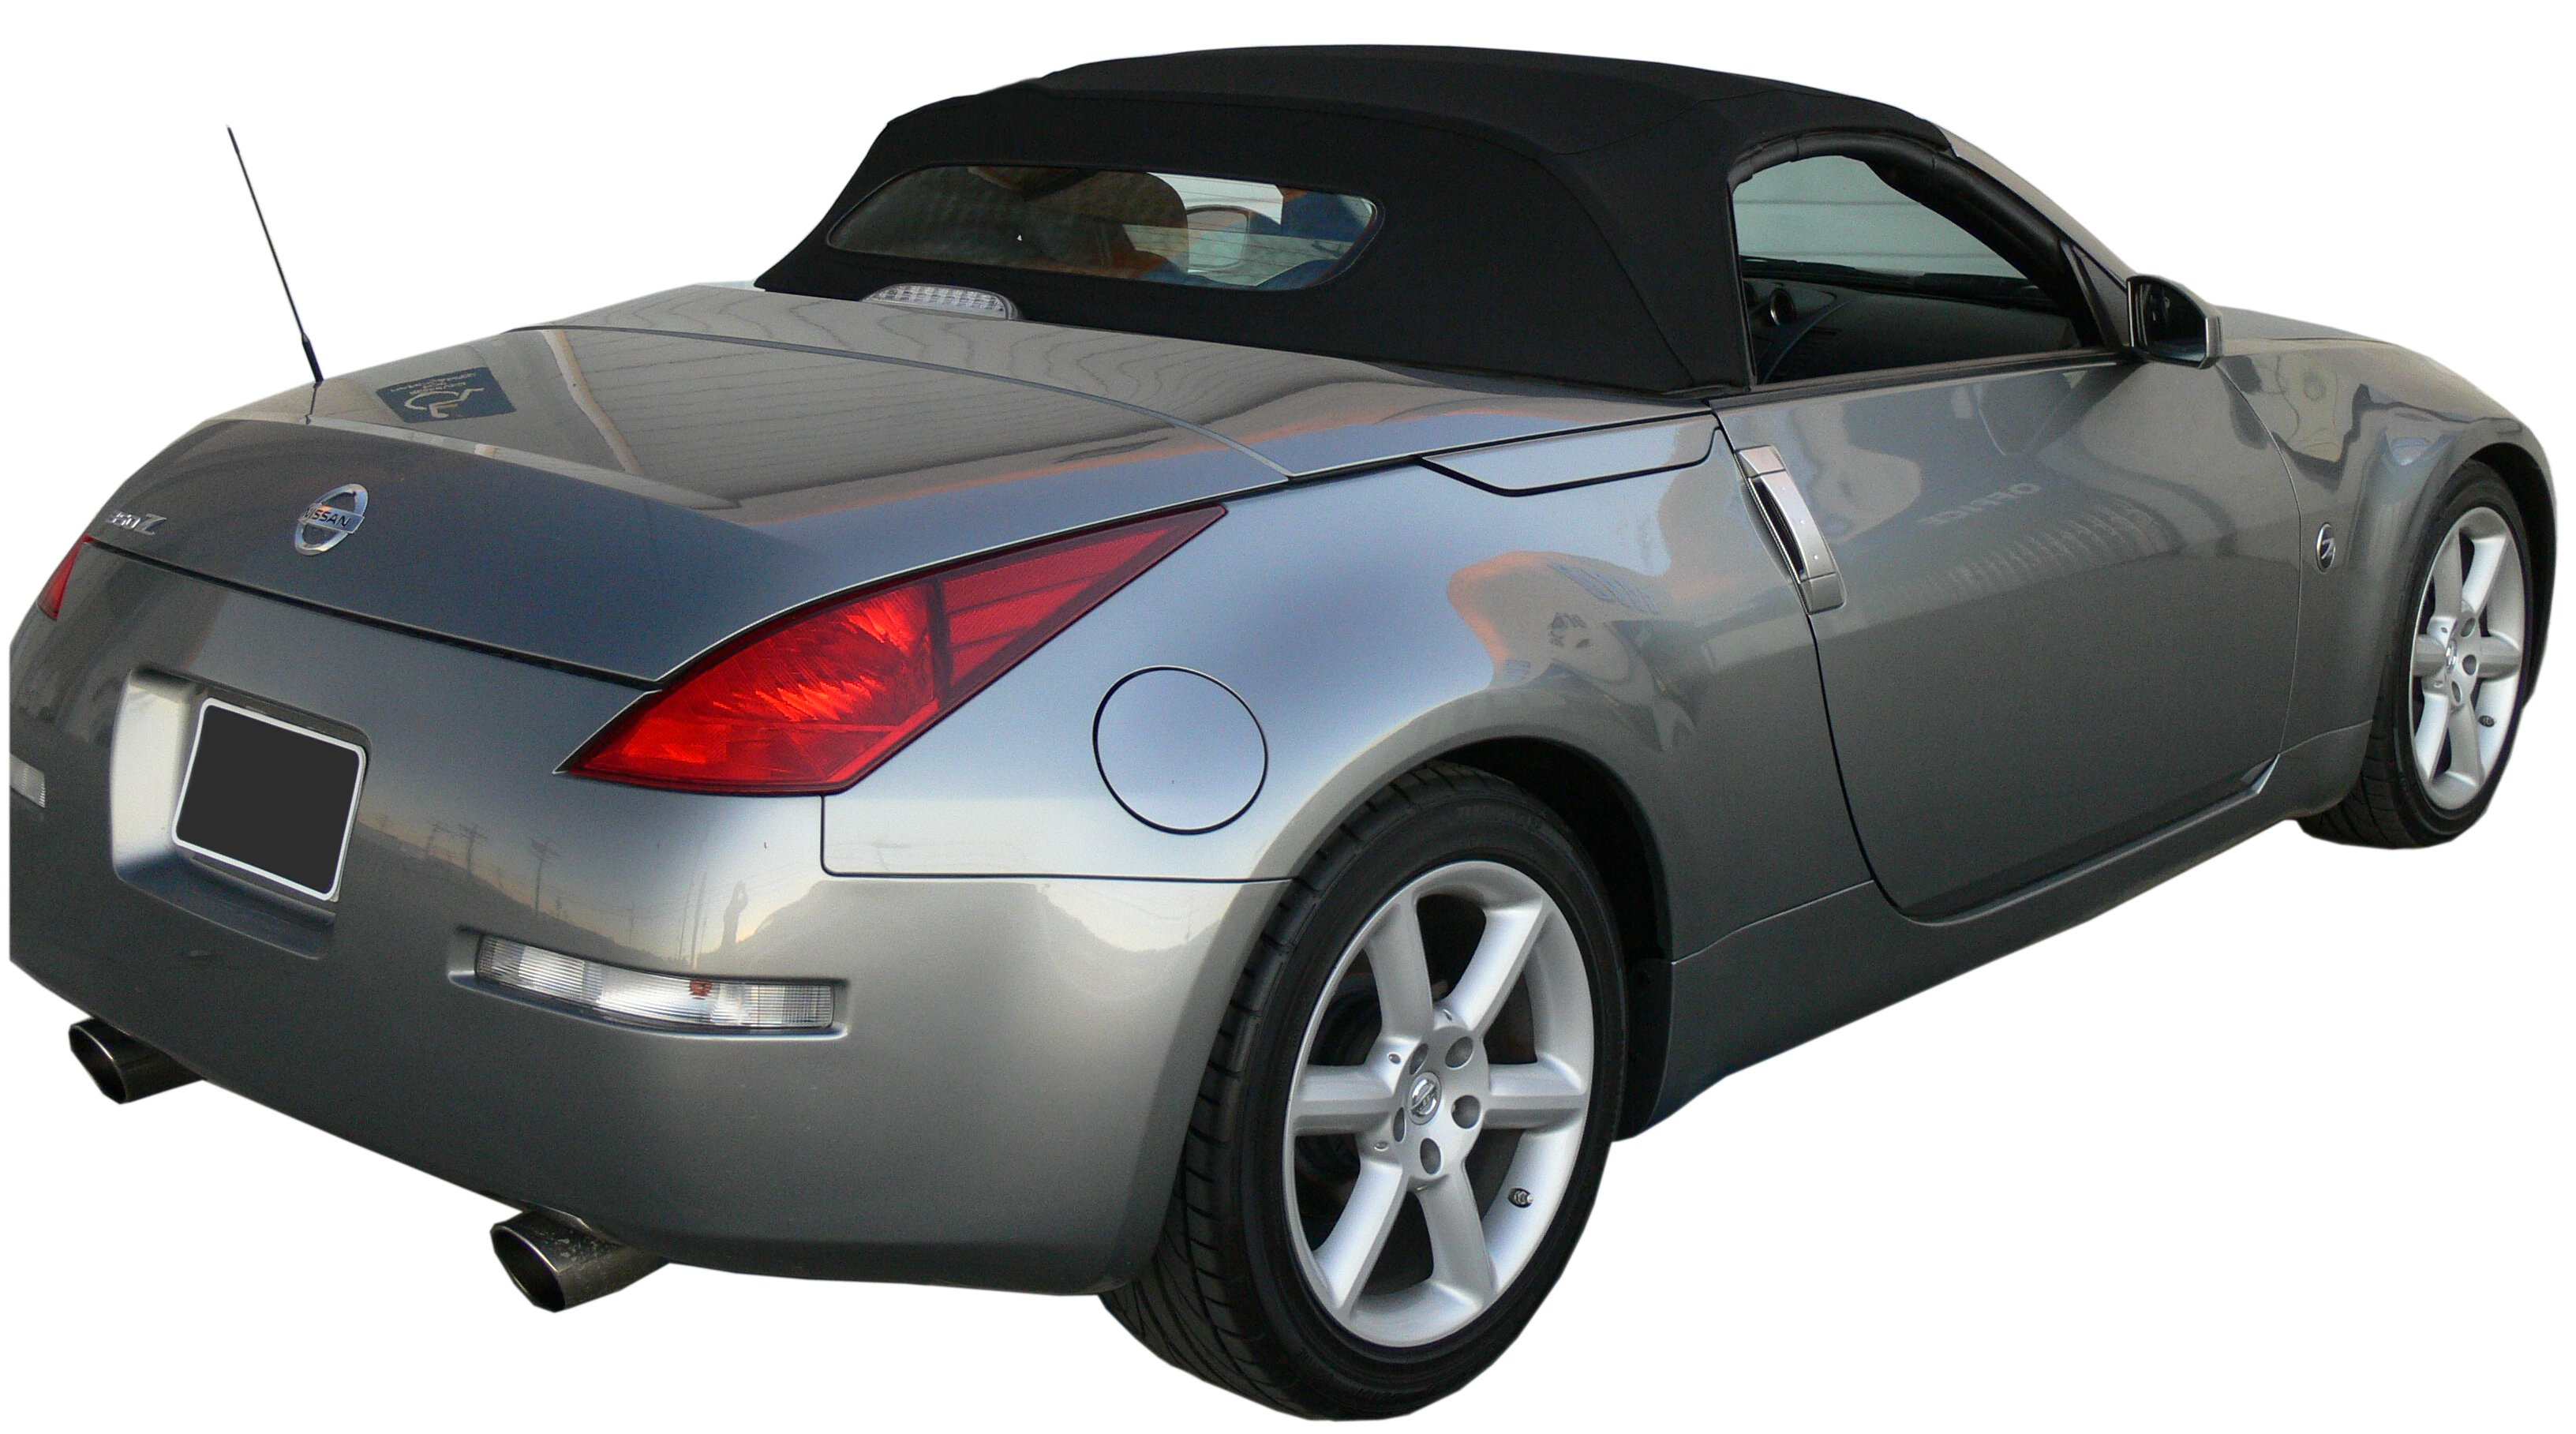 2004 nissan 350z enthusiast convertible image collections hd 2009 nissan 350z information and photos zombiedrive 2009 nissan 350z 10 nissan 350z 10 vanachro image vanachro Image collections